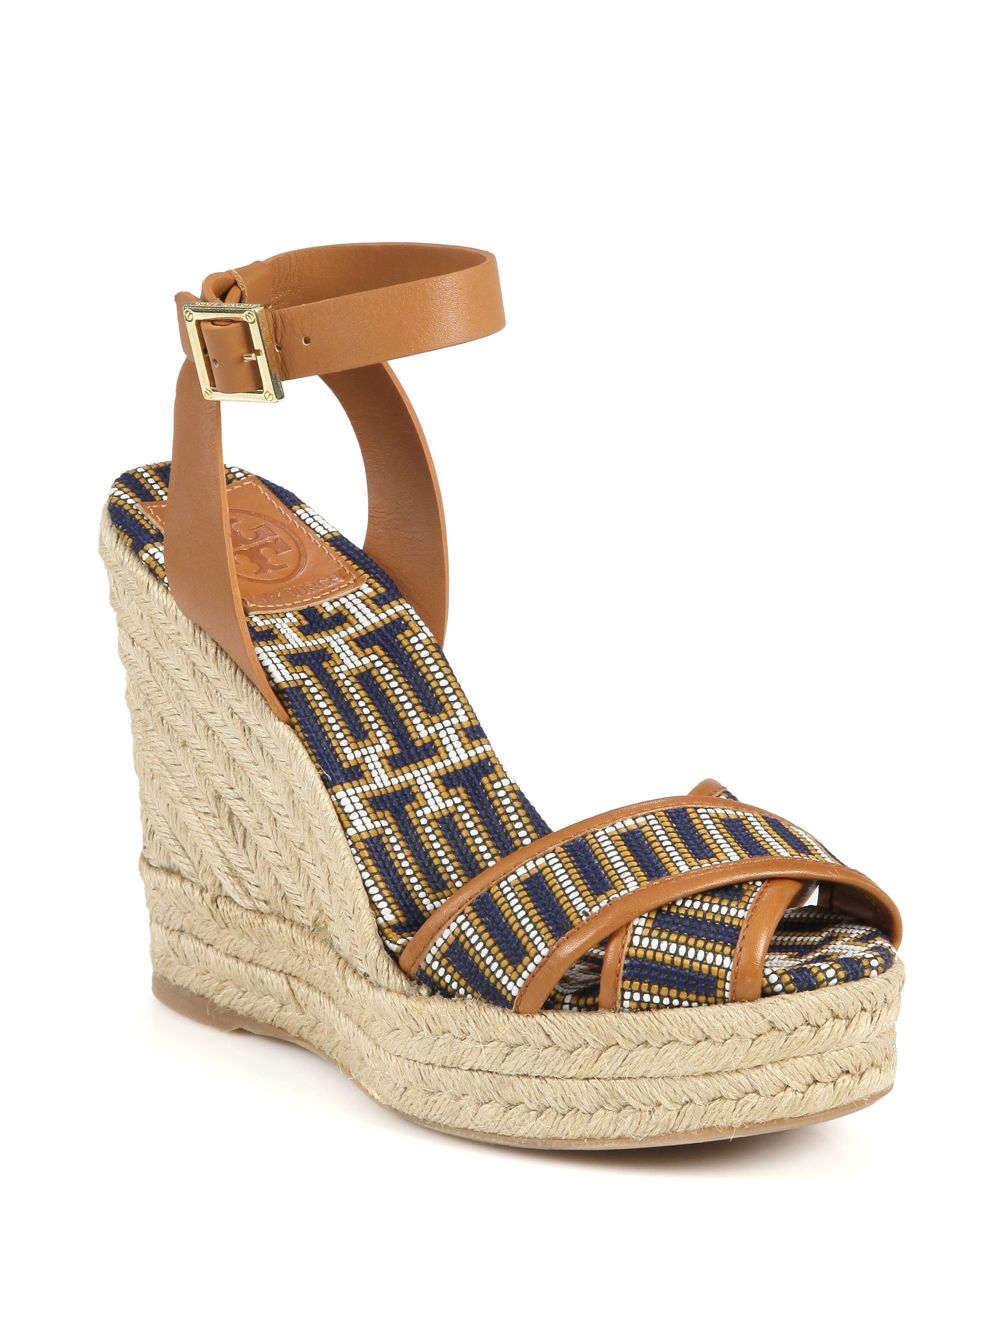 Tory Burch Florian Woven Leather Trim Espadrille Wedge